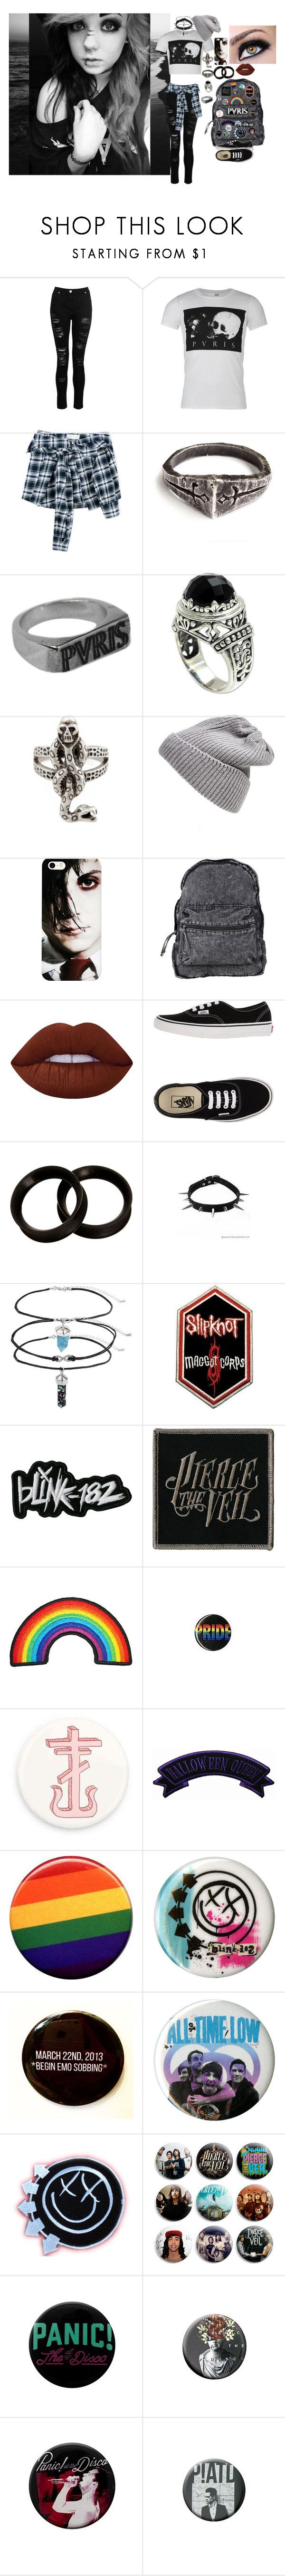 """""""Nicotine~Panic! At The Disco"""" by headbangingunicorn ❤ liked on Polyvore featuring Dorothy Perkins, Faith Connexion, NOVICA, UGG Australia, Agent Ninetynine, Lime Crime, Vans, Topshop and Paul Frank"""